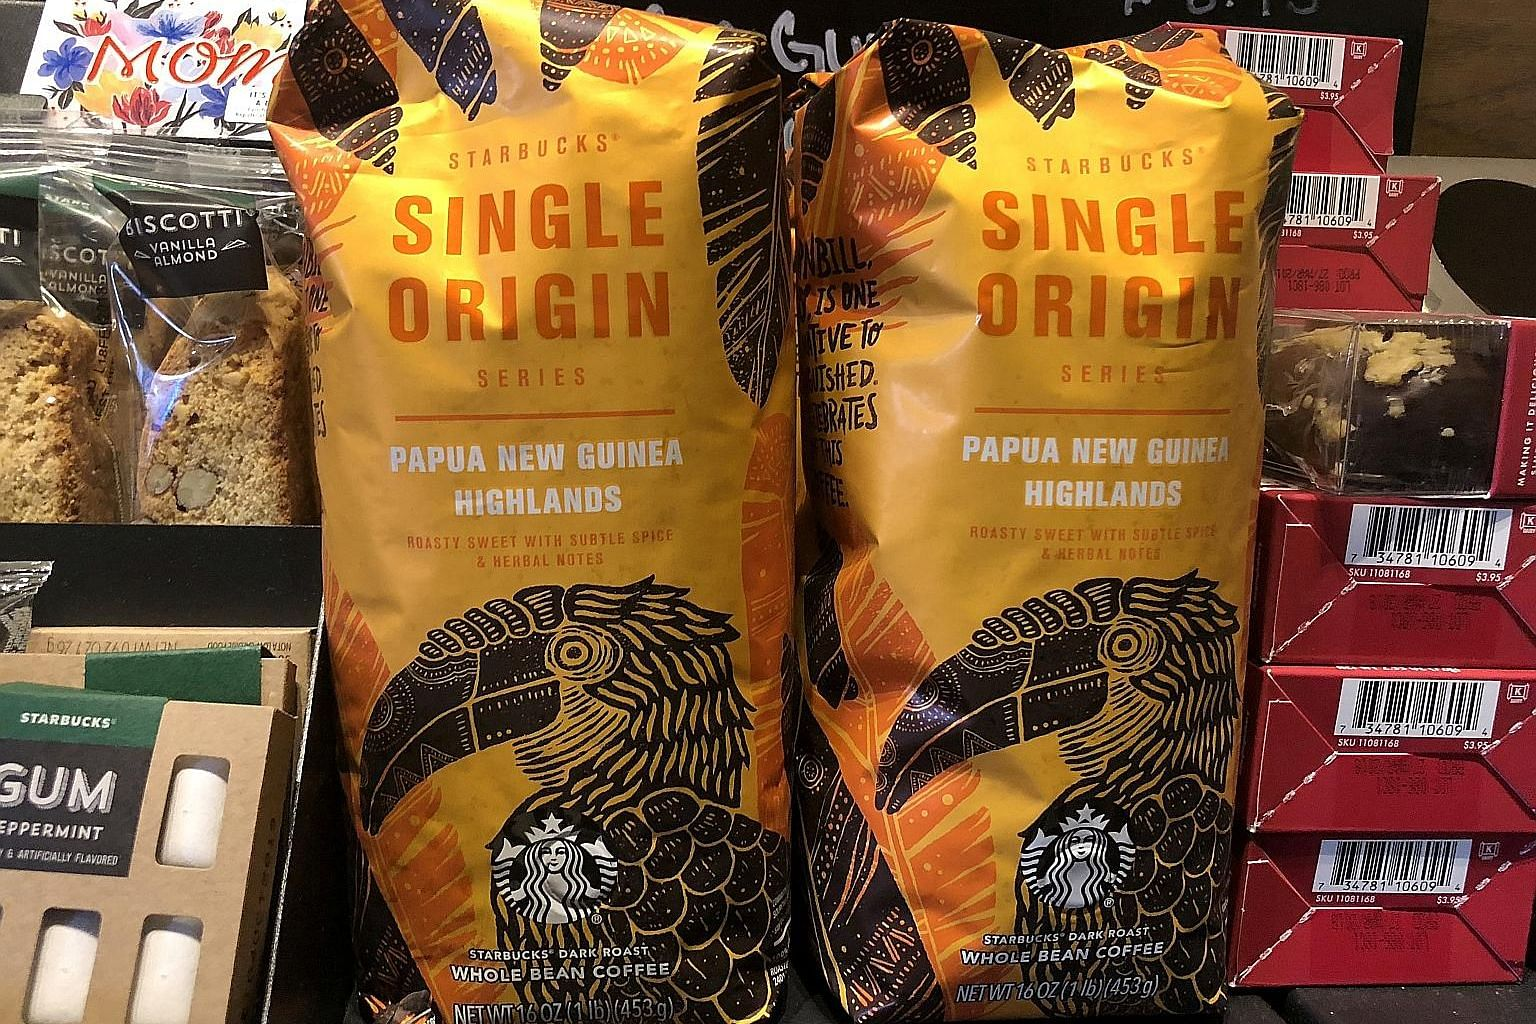 Starbucks coffee packs on sale in New York. Nestle and Starbucks are joining forces in a highly fragmented consumer drinks category.